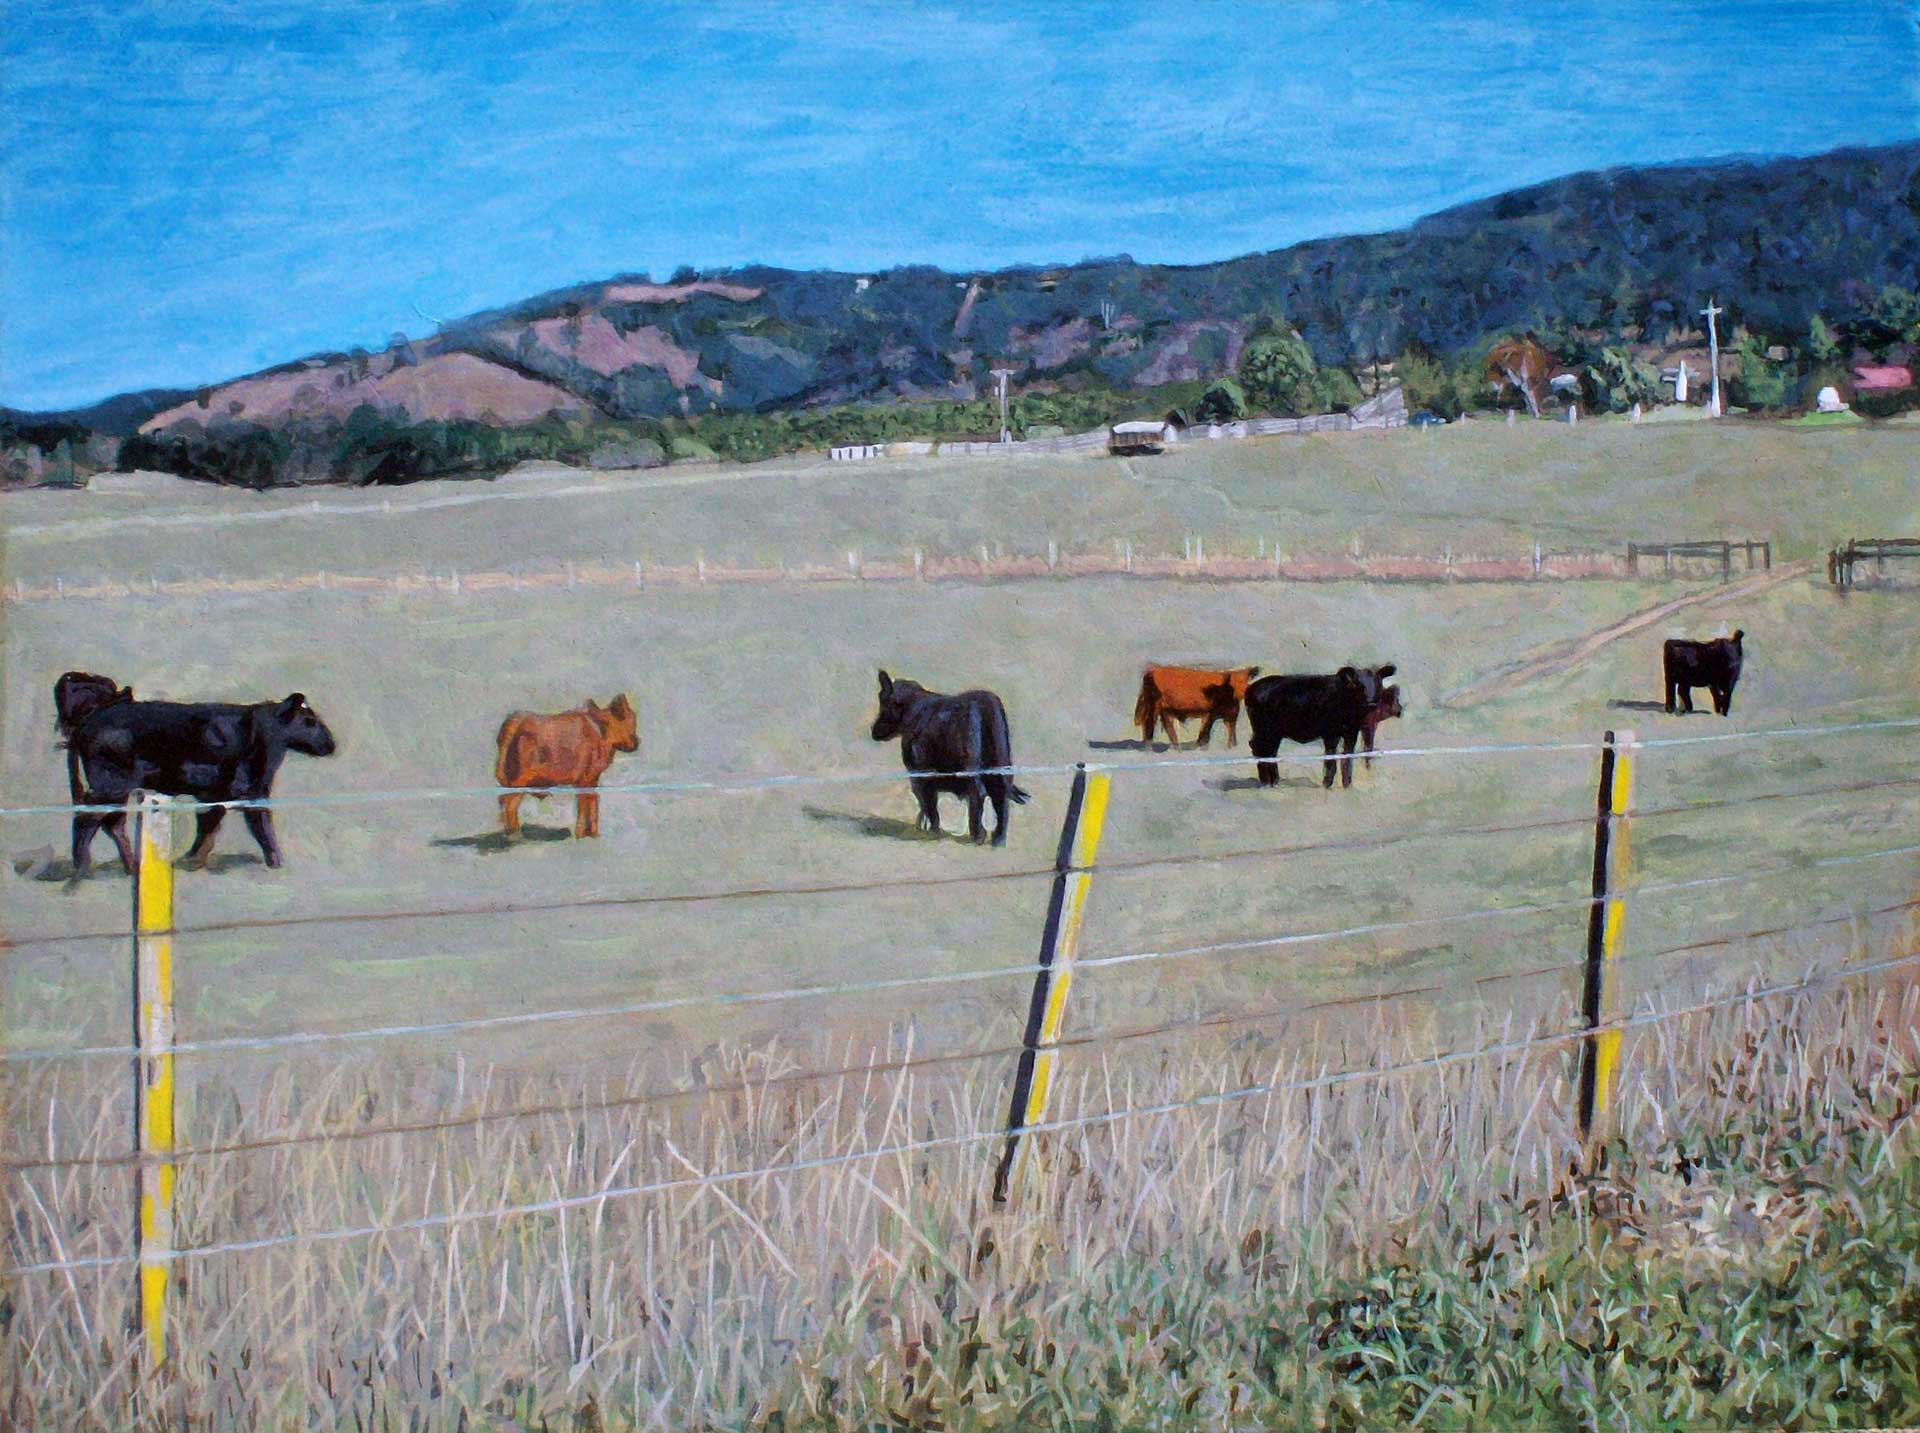 Photorealist painting - Cows in a Paddock at Yarra Glen